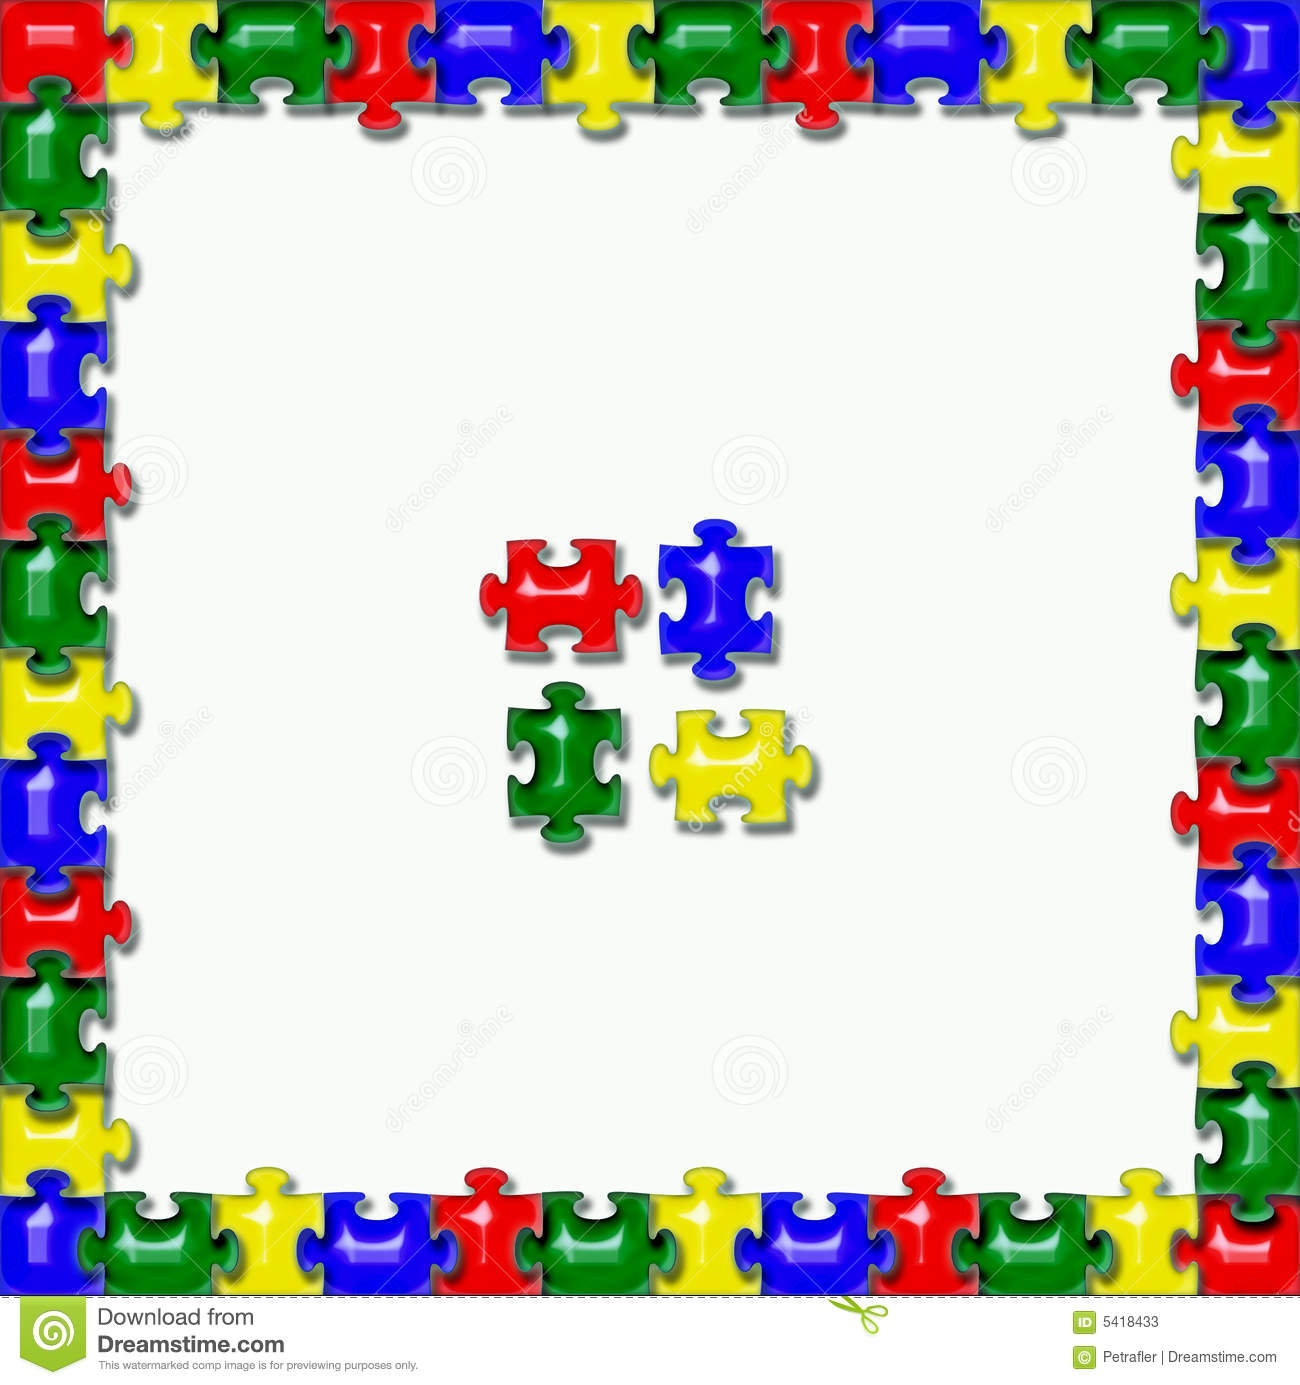 jigsaw puzzle frame background